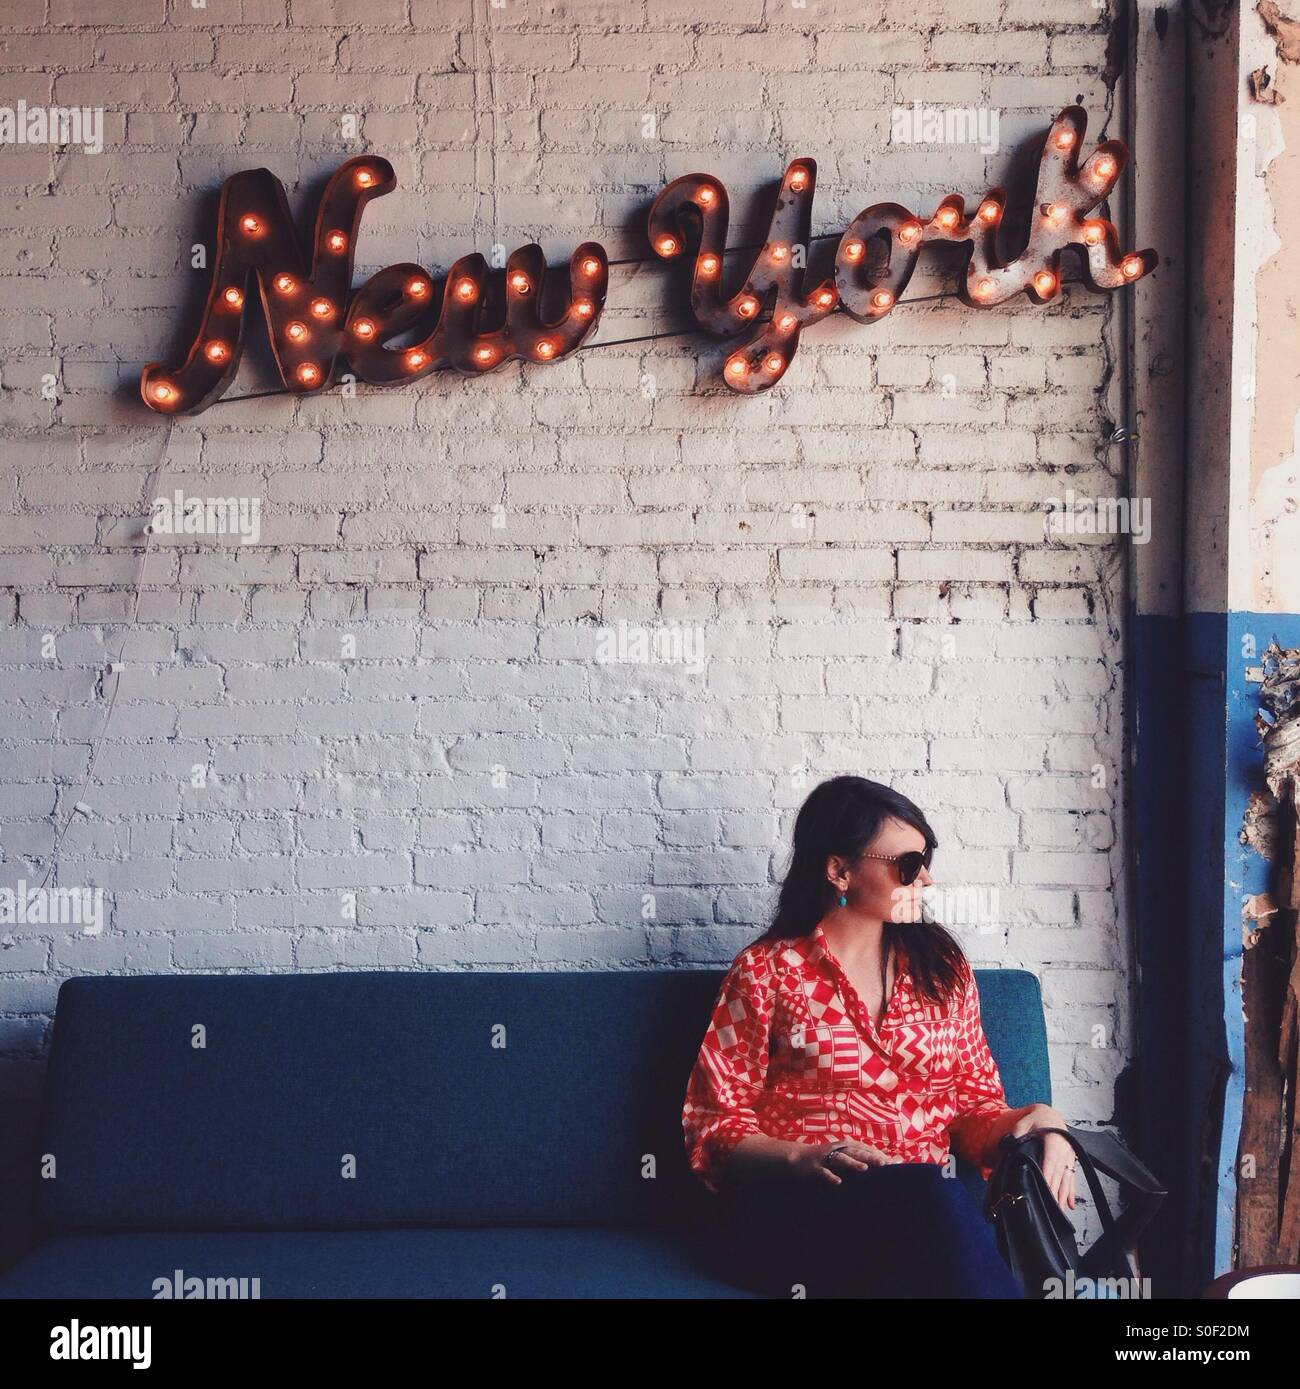 New York Wall Sign and Woman Sitting Stock Photo